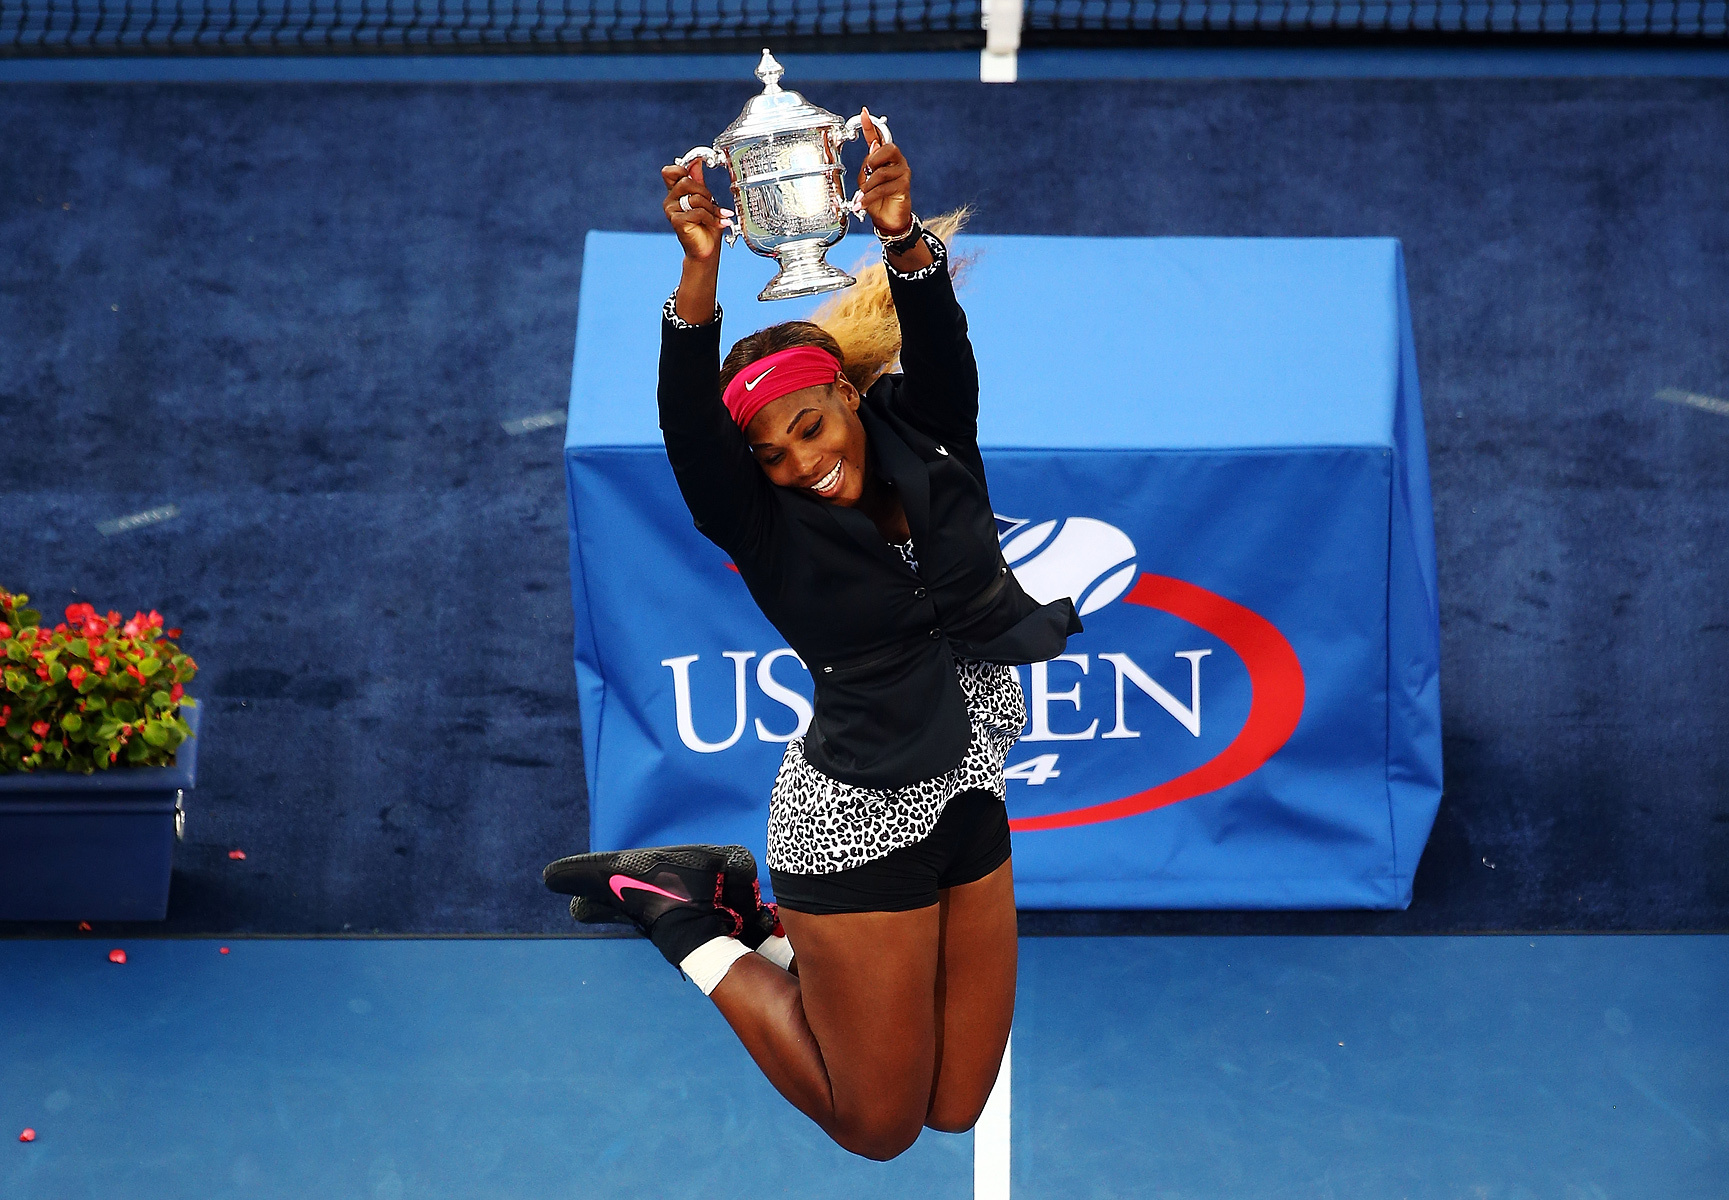 2014 US Open Day 14